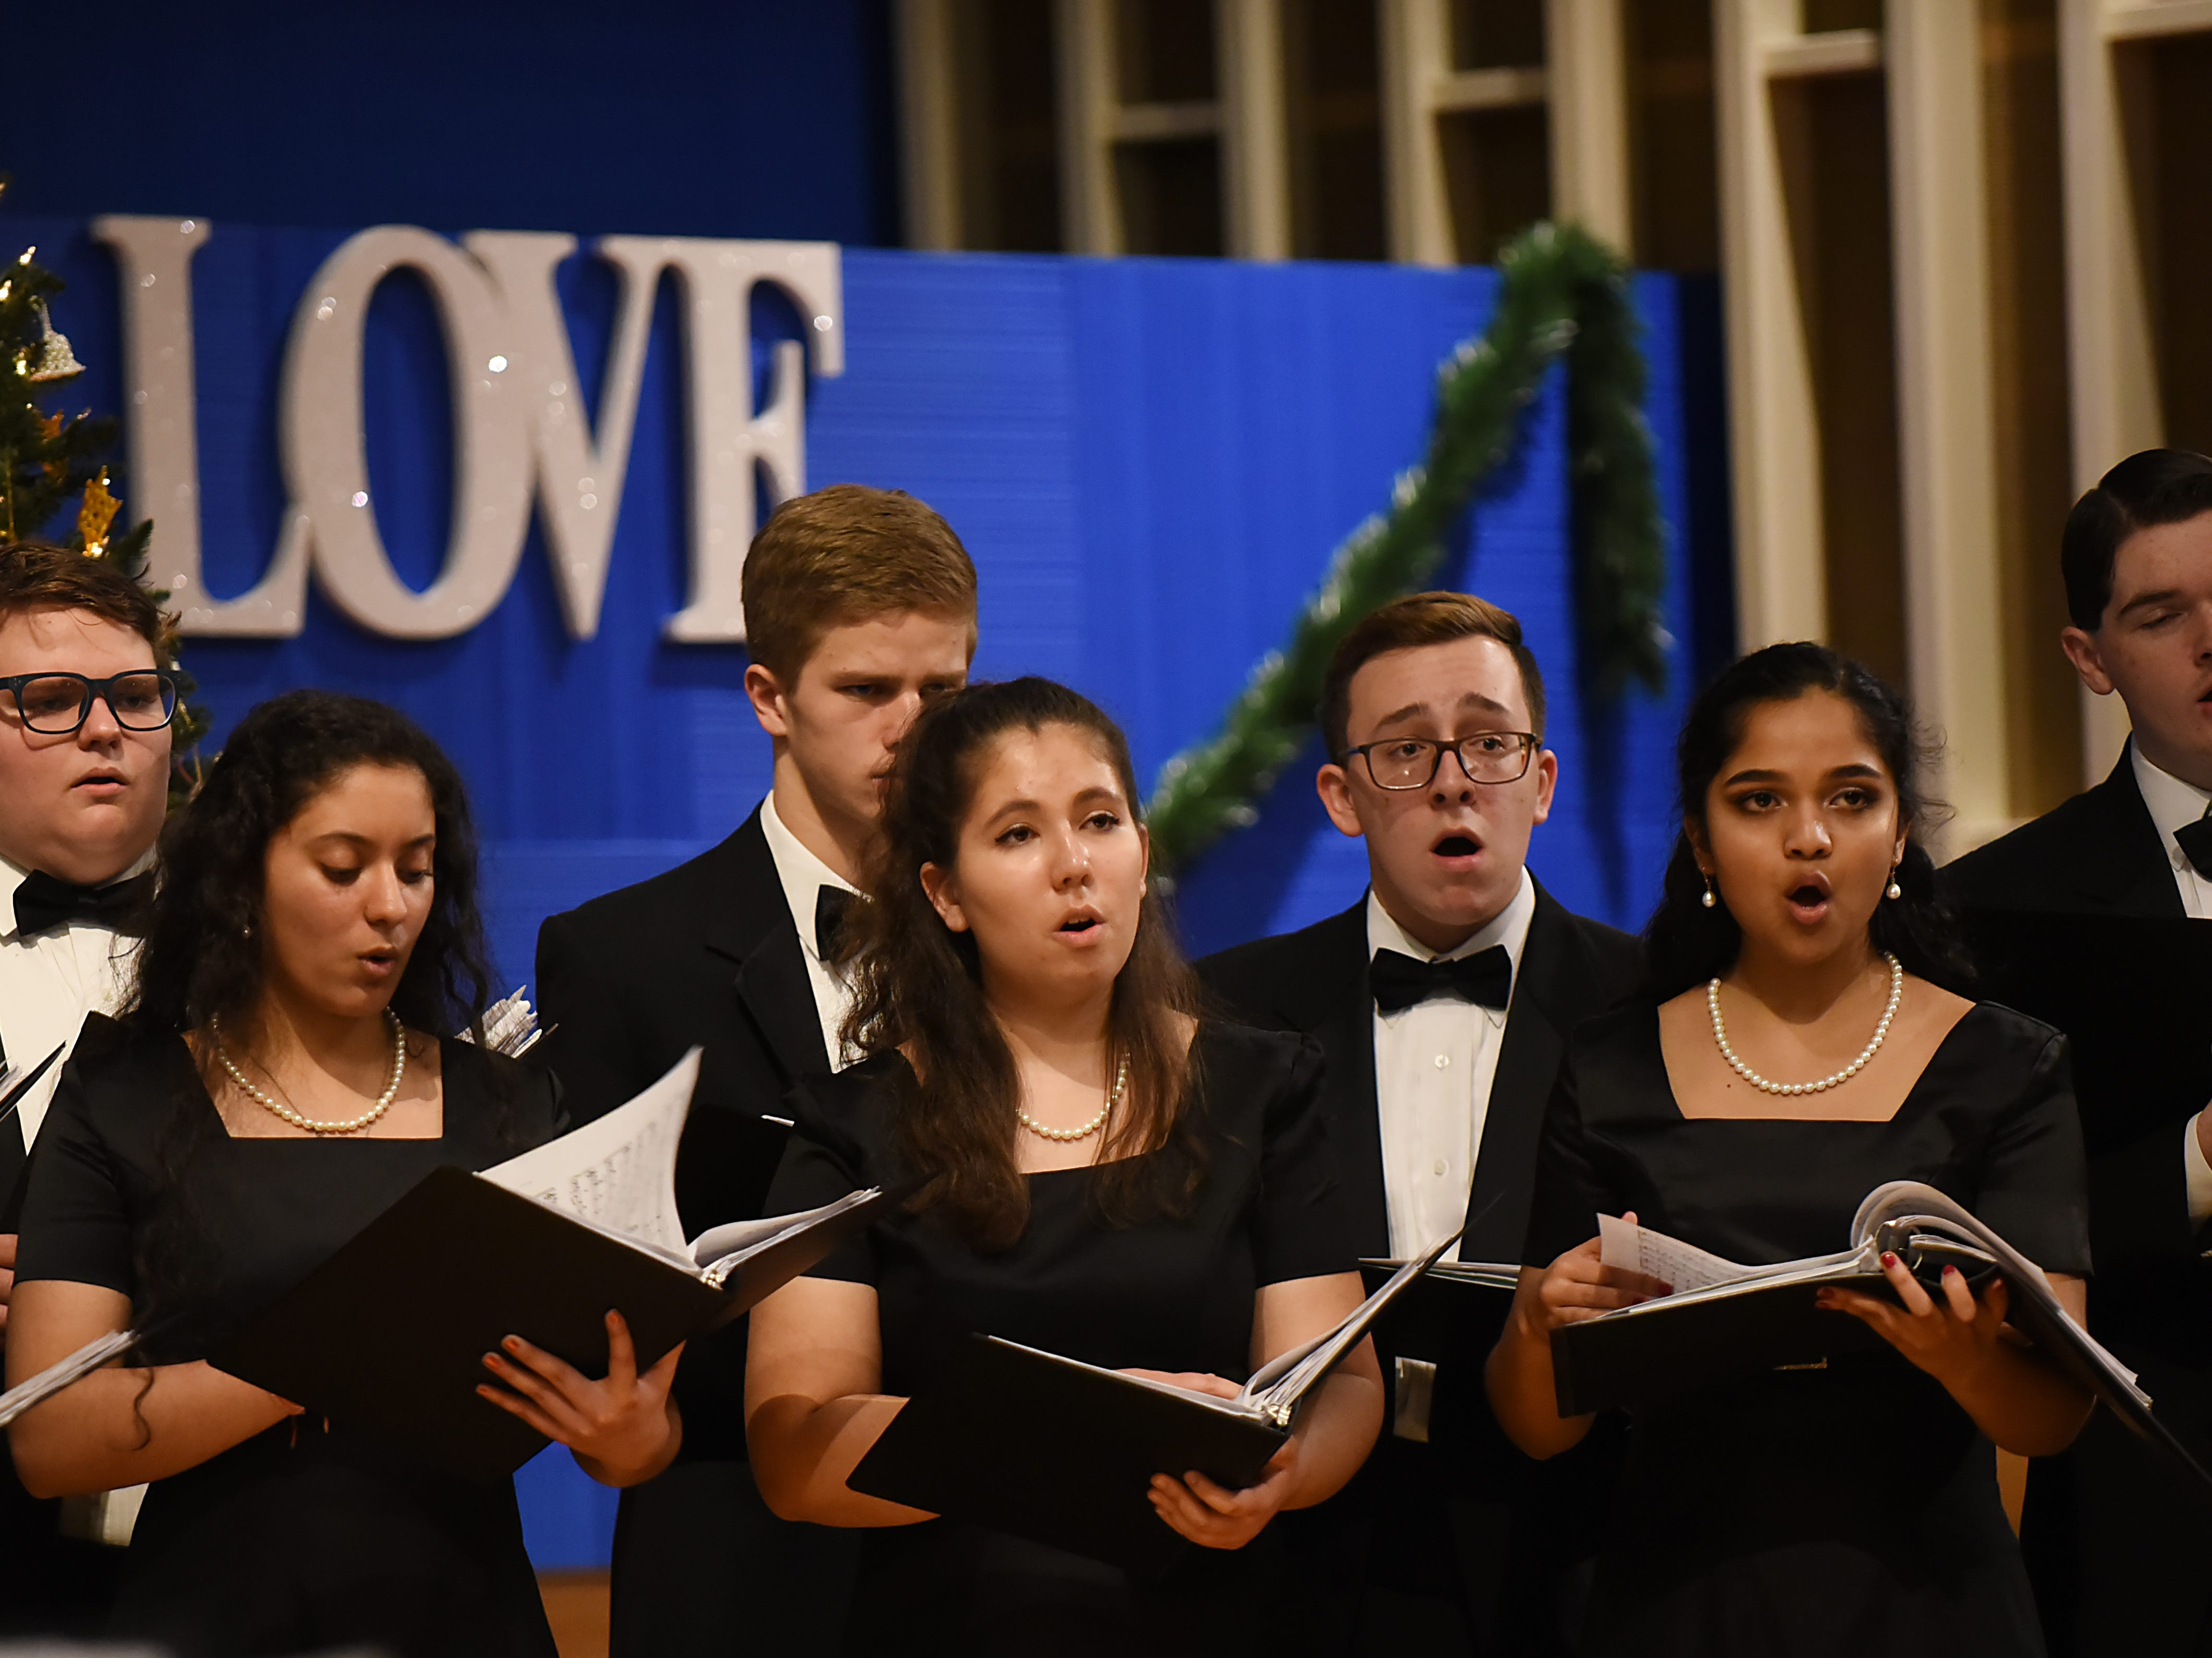 Morris Knolls Madrigal Choir during a dress rehearsal at Denville Community Church in Denville on Thursday November 29, 2018 prior to their performance at the White House.